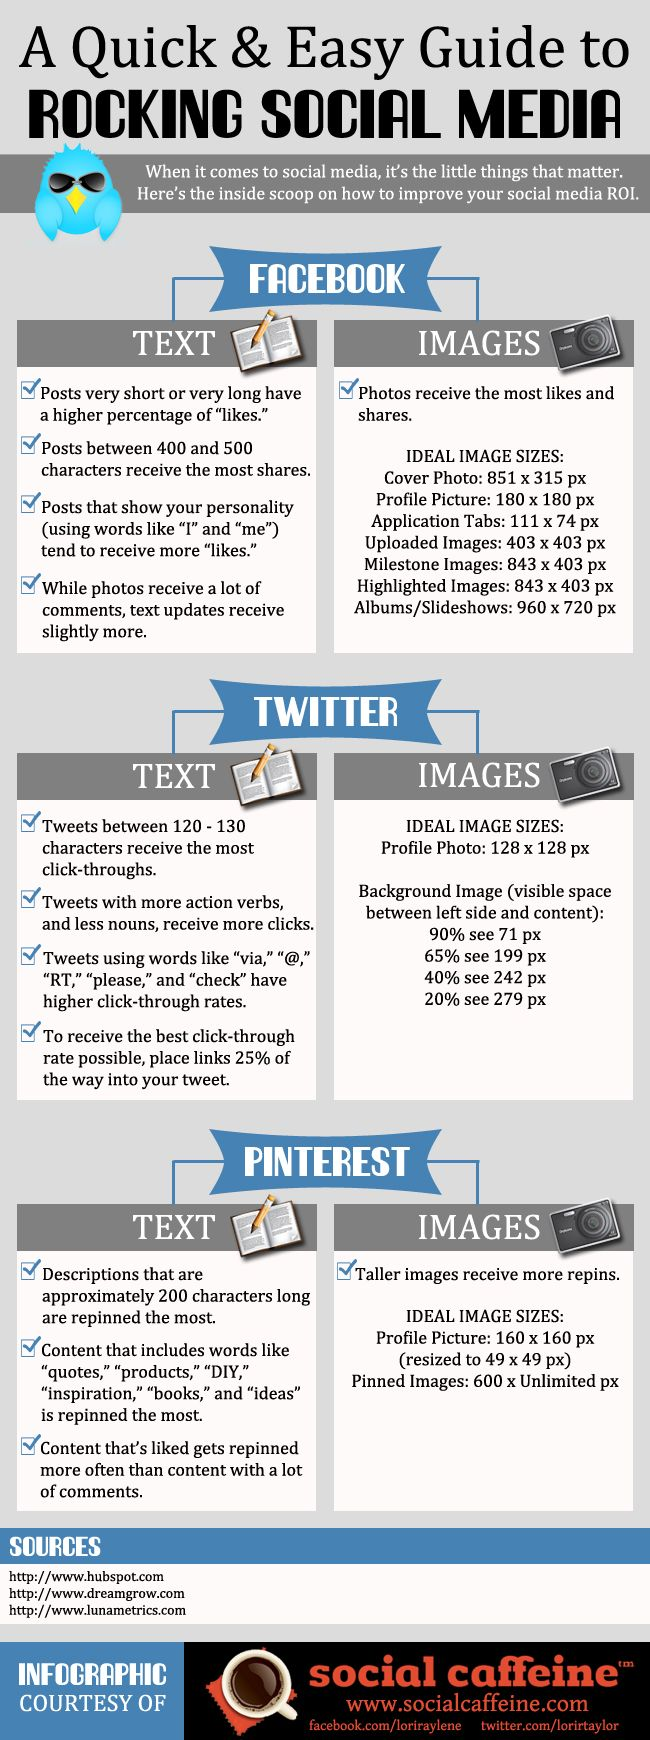 A Quick And Easy Guide to Rocking Social Media [INFOGRAPHIC] #socialmedia #Infographic #albertobokos